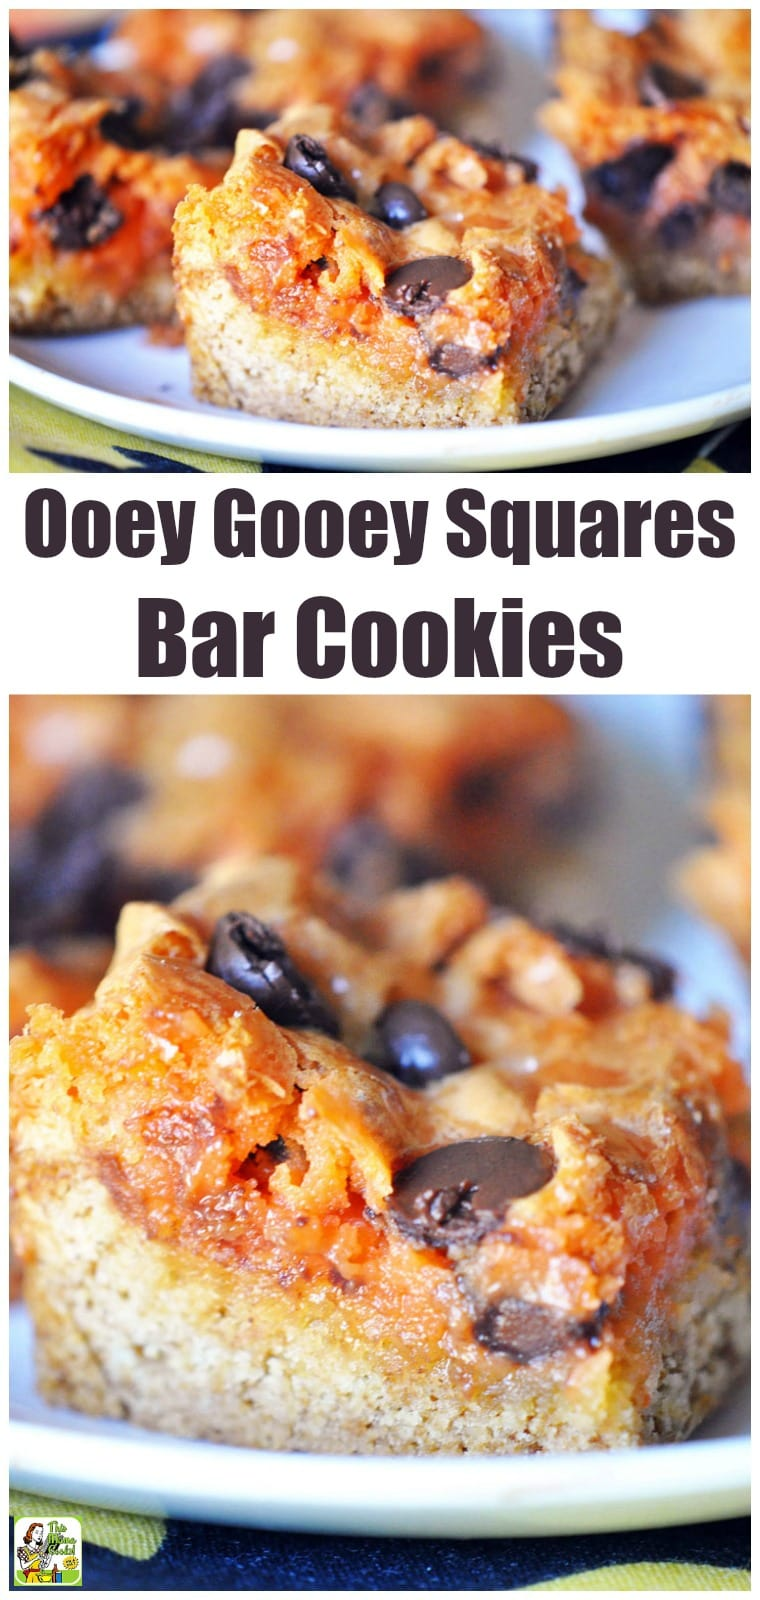 Ooey Gooey Squares Bar Cookies can be quickly made when you're busy with holiday entertaining. This easy-to-make bar cookie recipe comes with gluten-free, sugar-free, and dairy-free options. #recipes #easy #recipeoftheday #glutenfree #easyrecipe #easyrecipes #glutenfreerecipes #baking #snacks #cookies #desserts #dessertrecipes #dessertideas